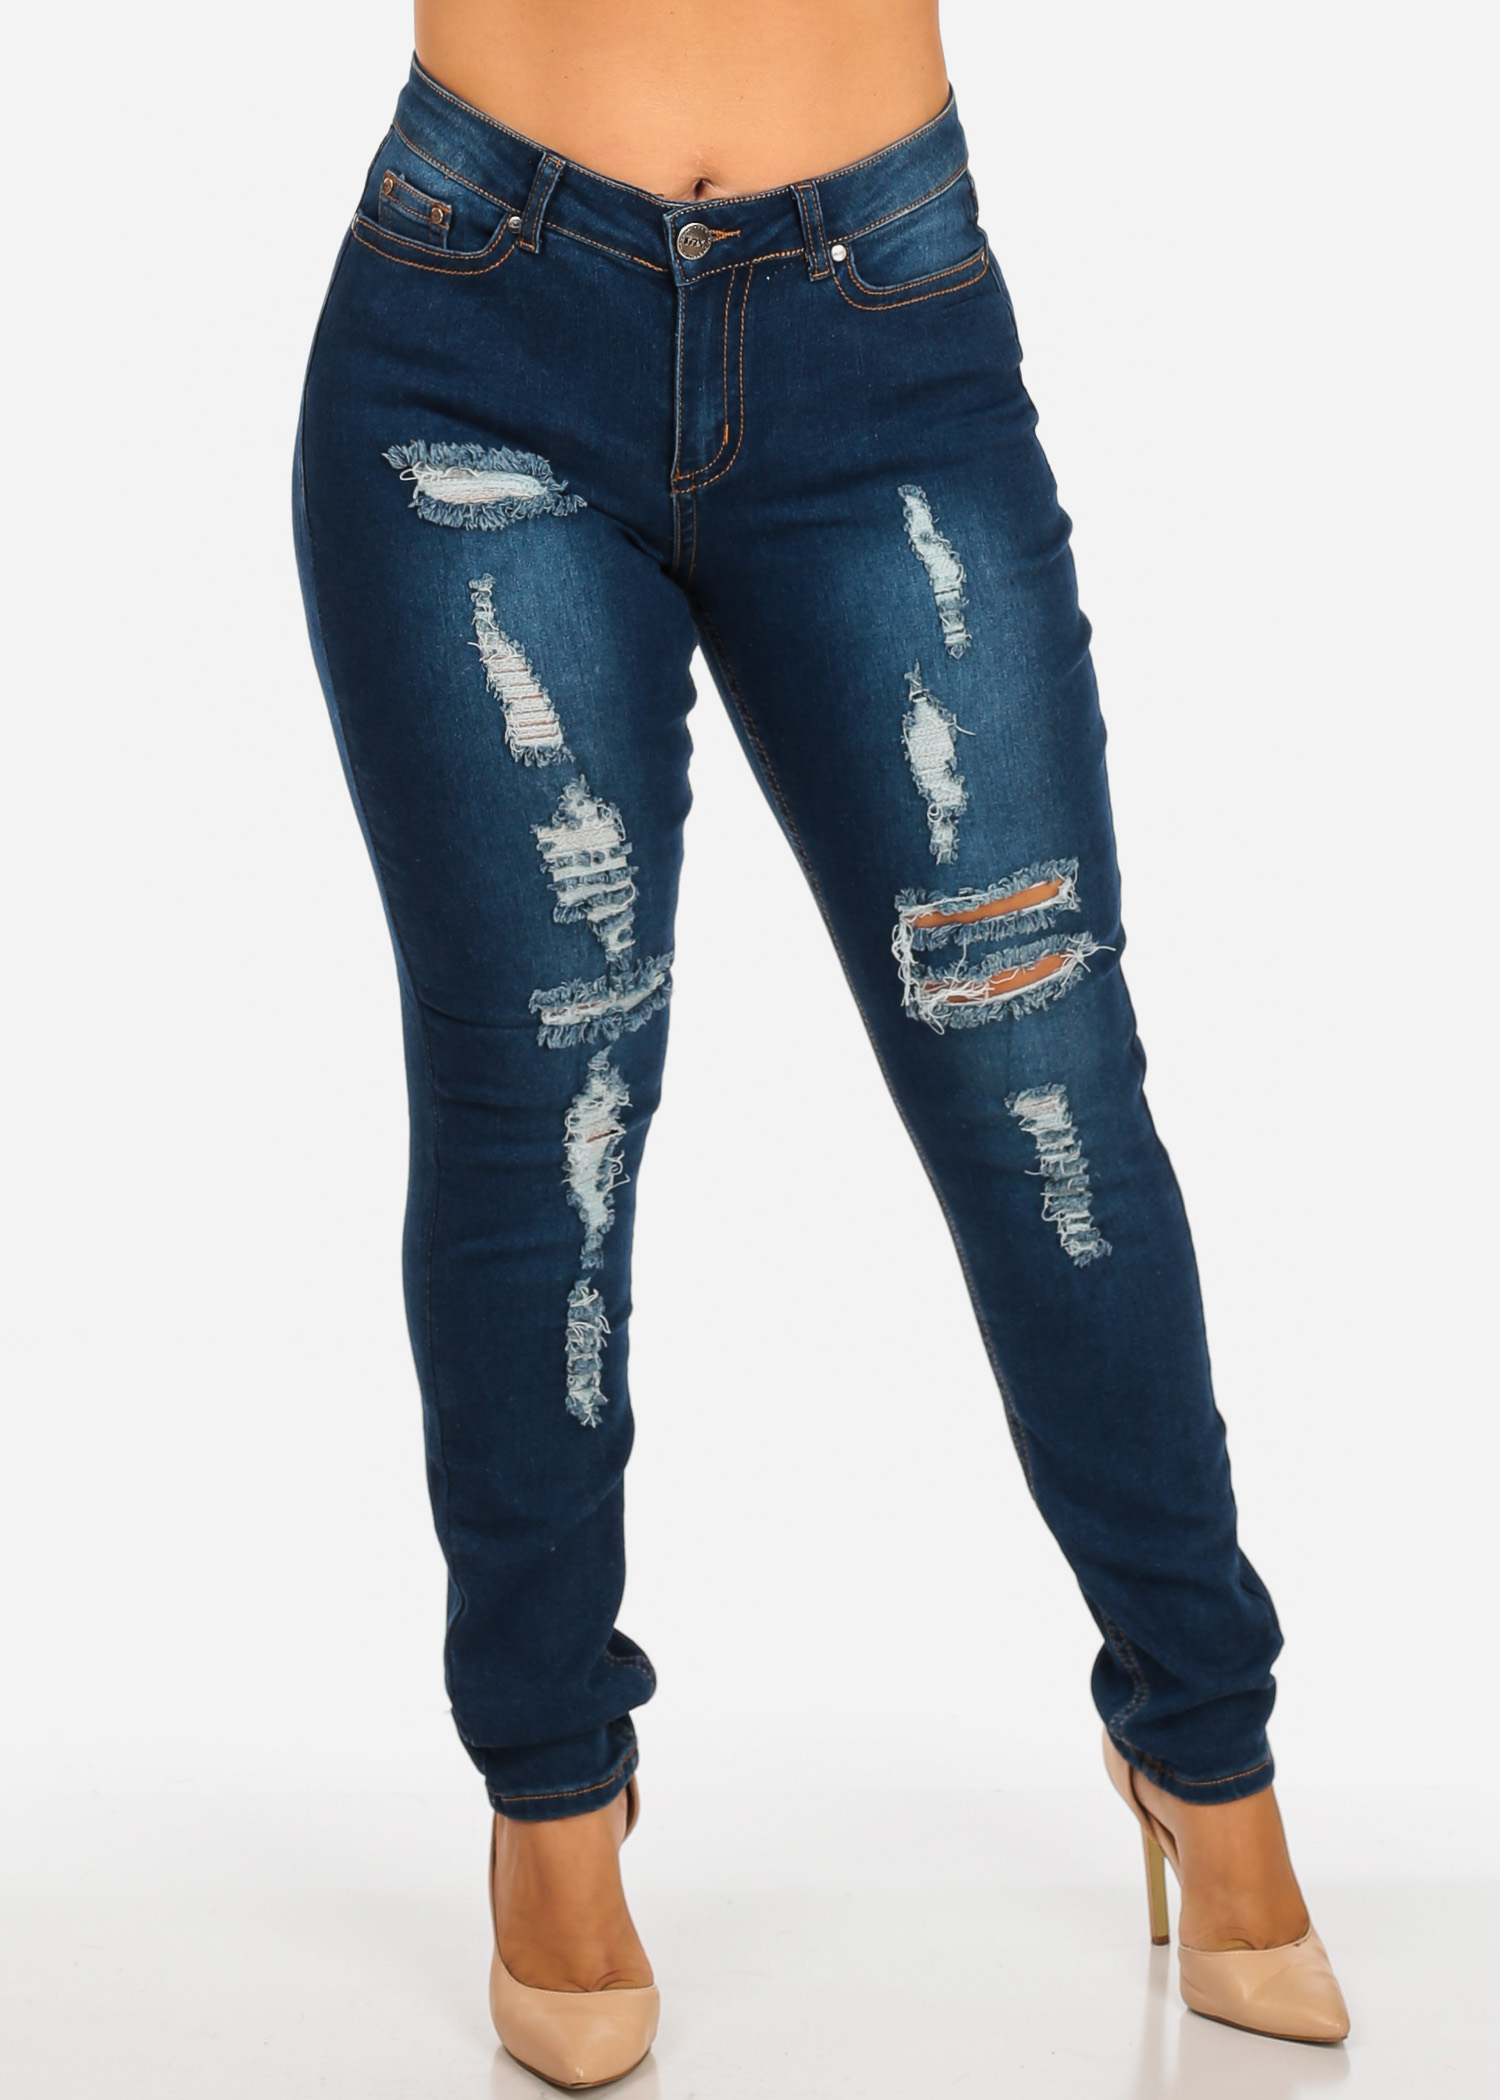 Womens Juniors Plus Size Med Wash Distressed High Rise Skinny Jeans W Orange Stitching 10183R